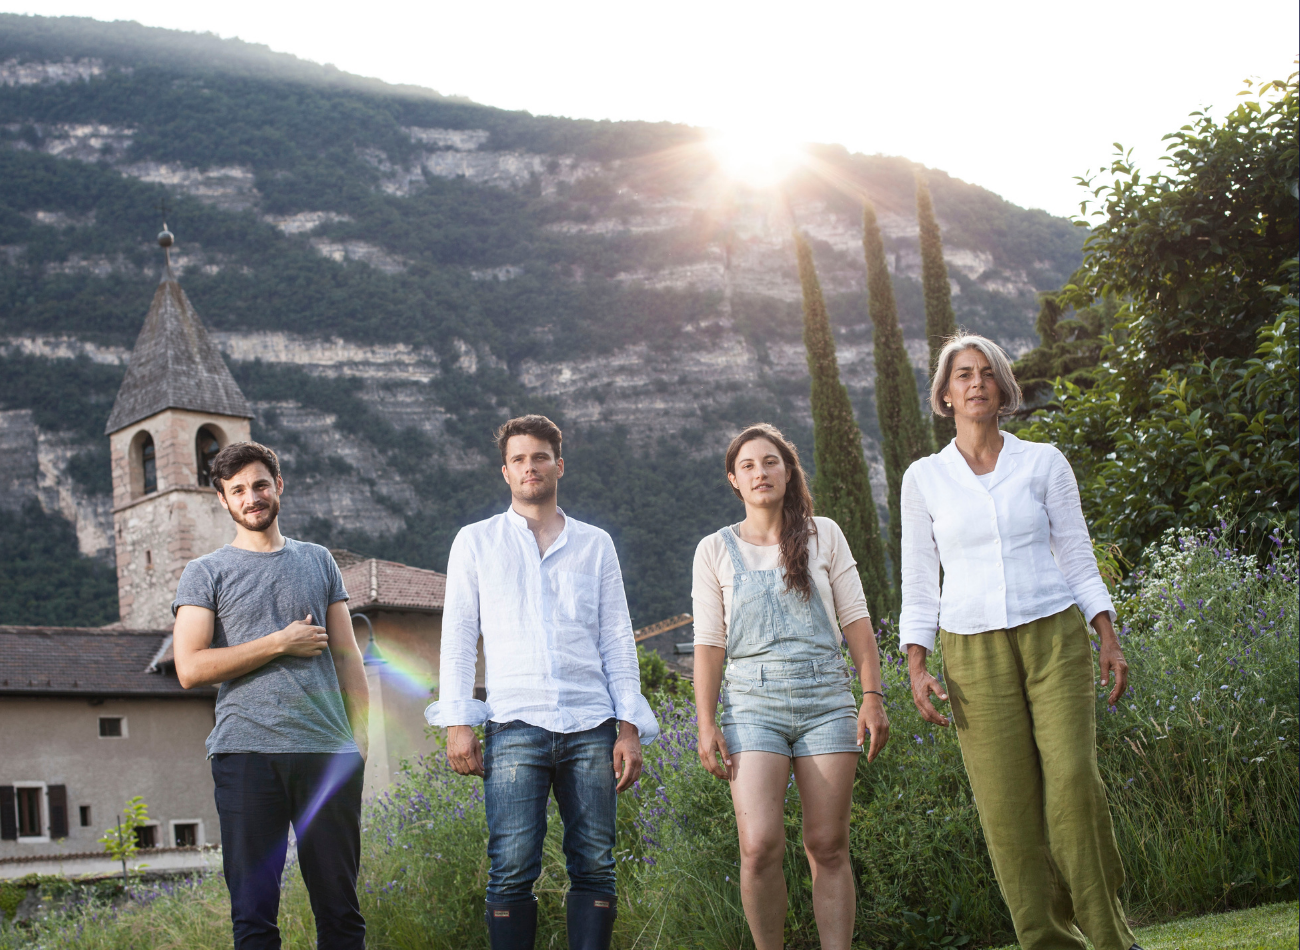 The Foradori family at their winery in the Dolomites